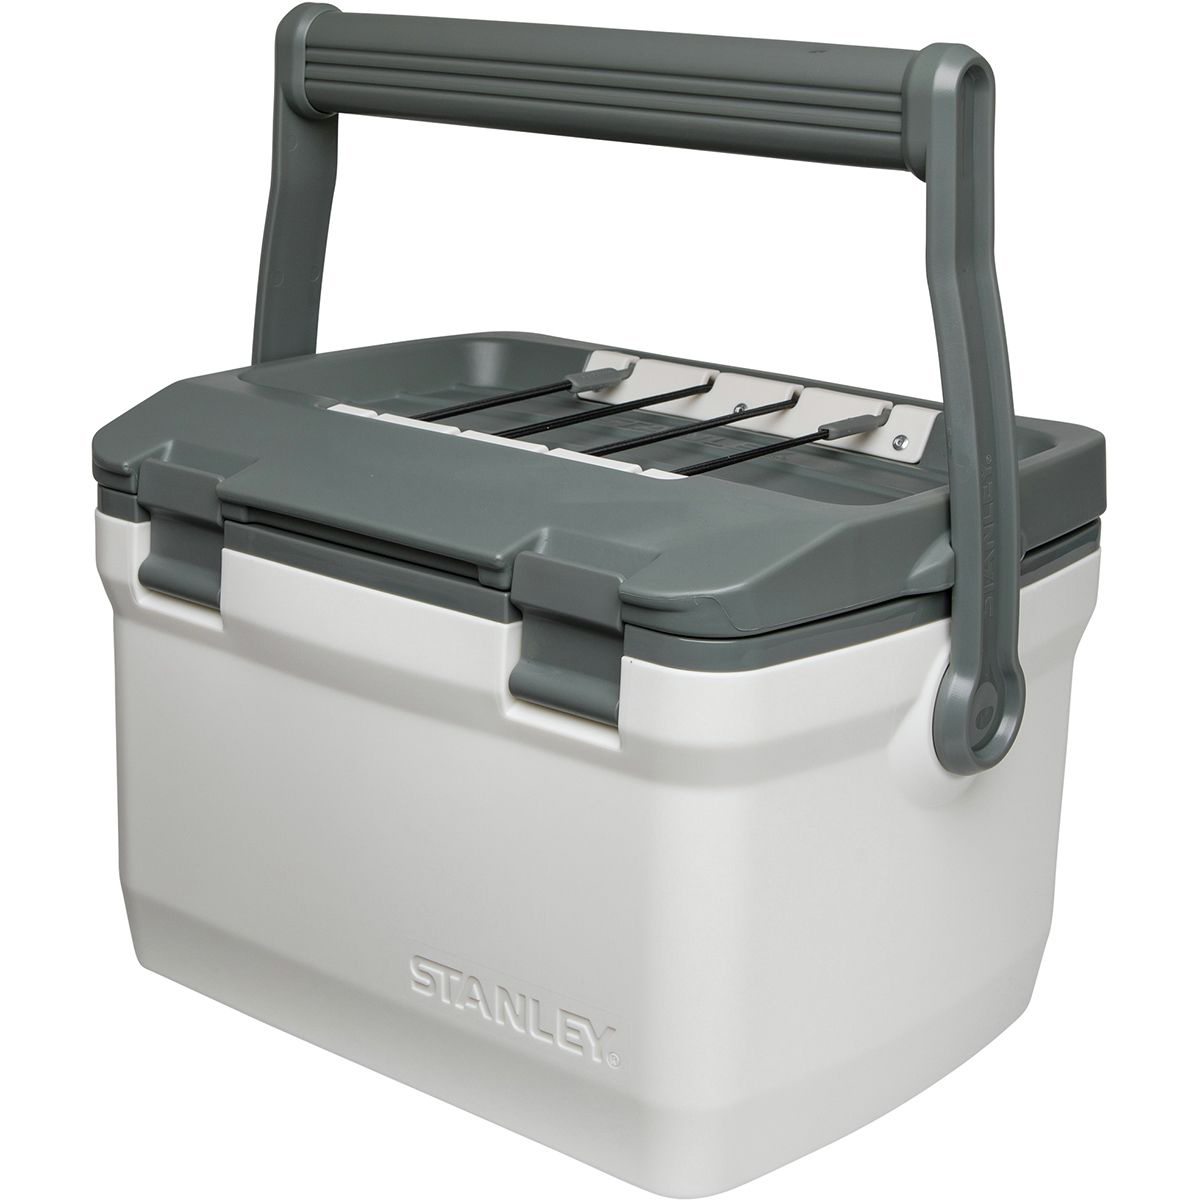 Stanley-Adventure-7-qt-Easy-Carry-Foam-Insulated-Outdoor-Cooler thumbnail 9